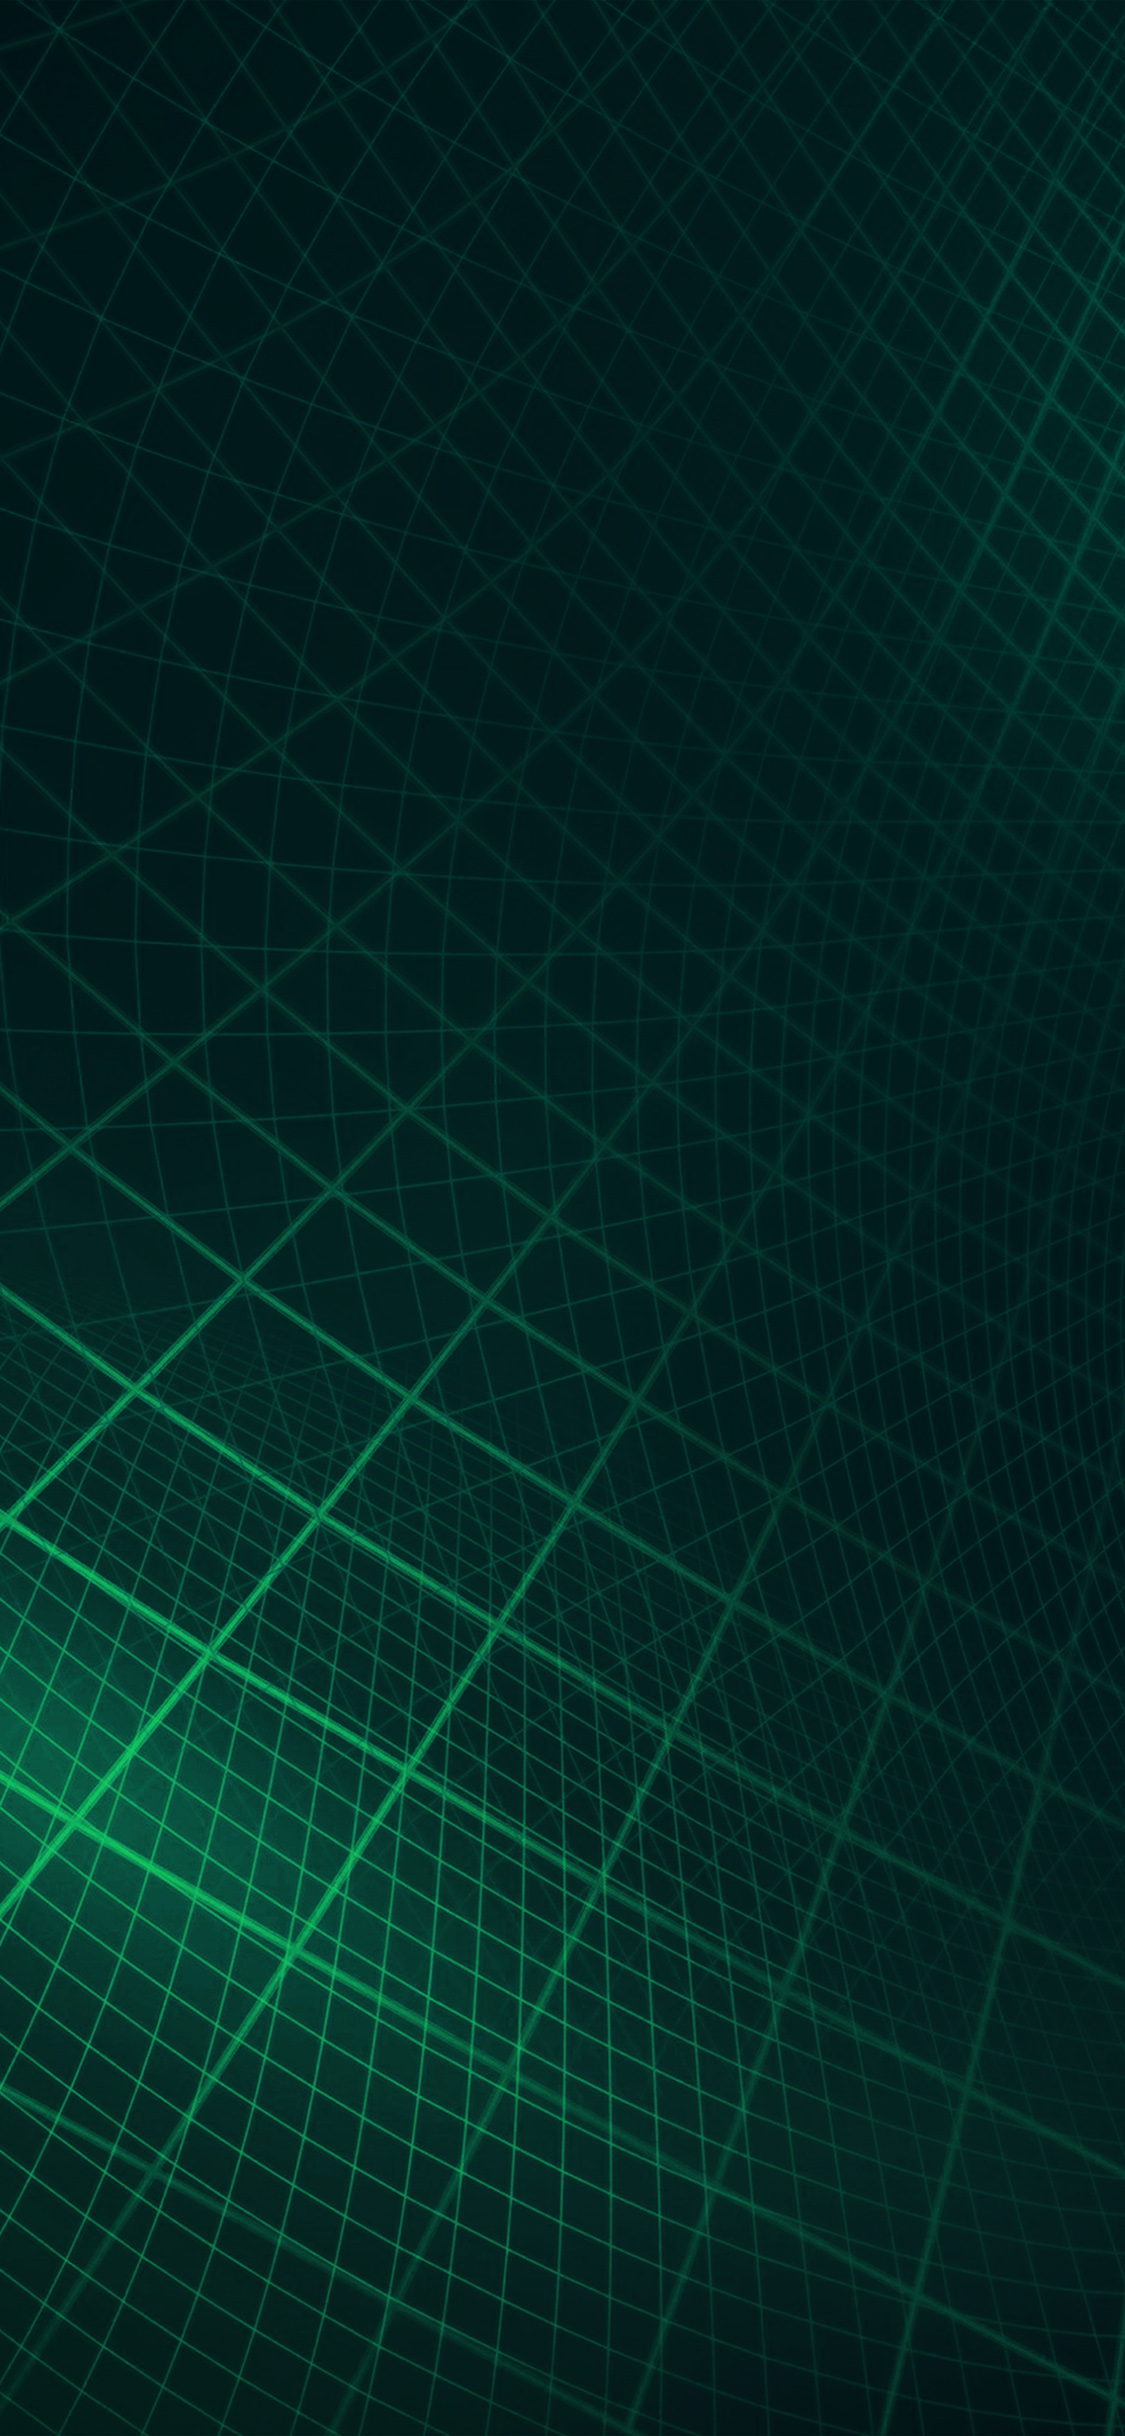 Iphone11papers Com Iphone11 Wallpaper Vt17 Abstract Line Digital Dark Green Pattern